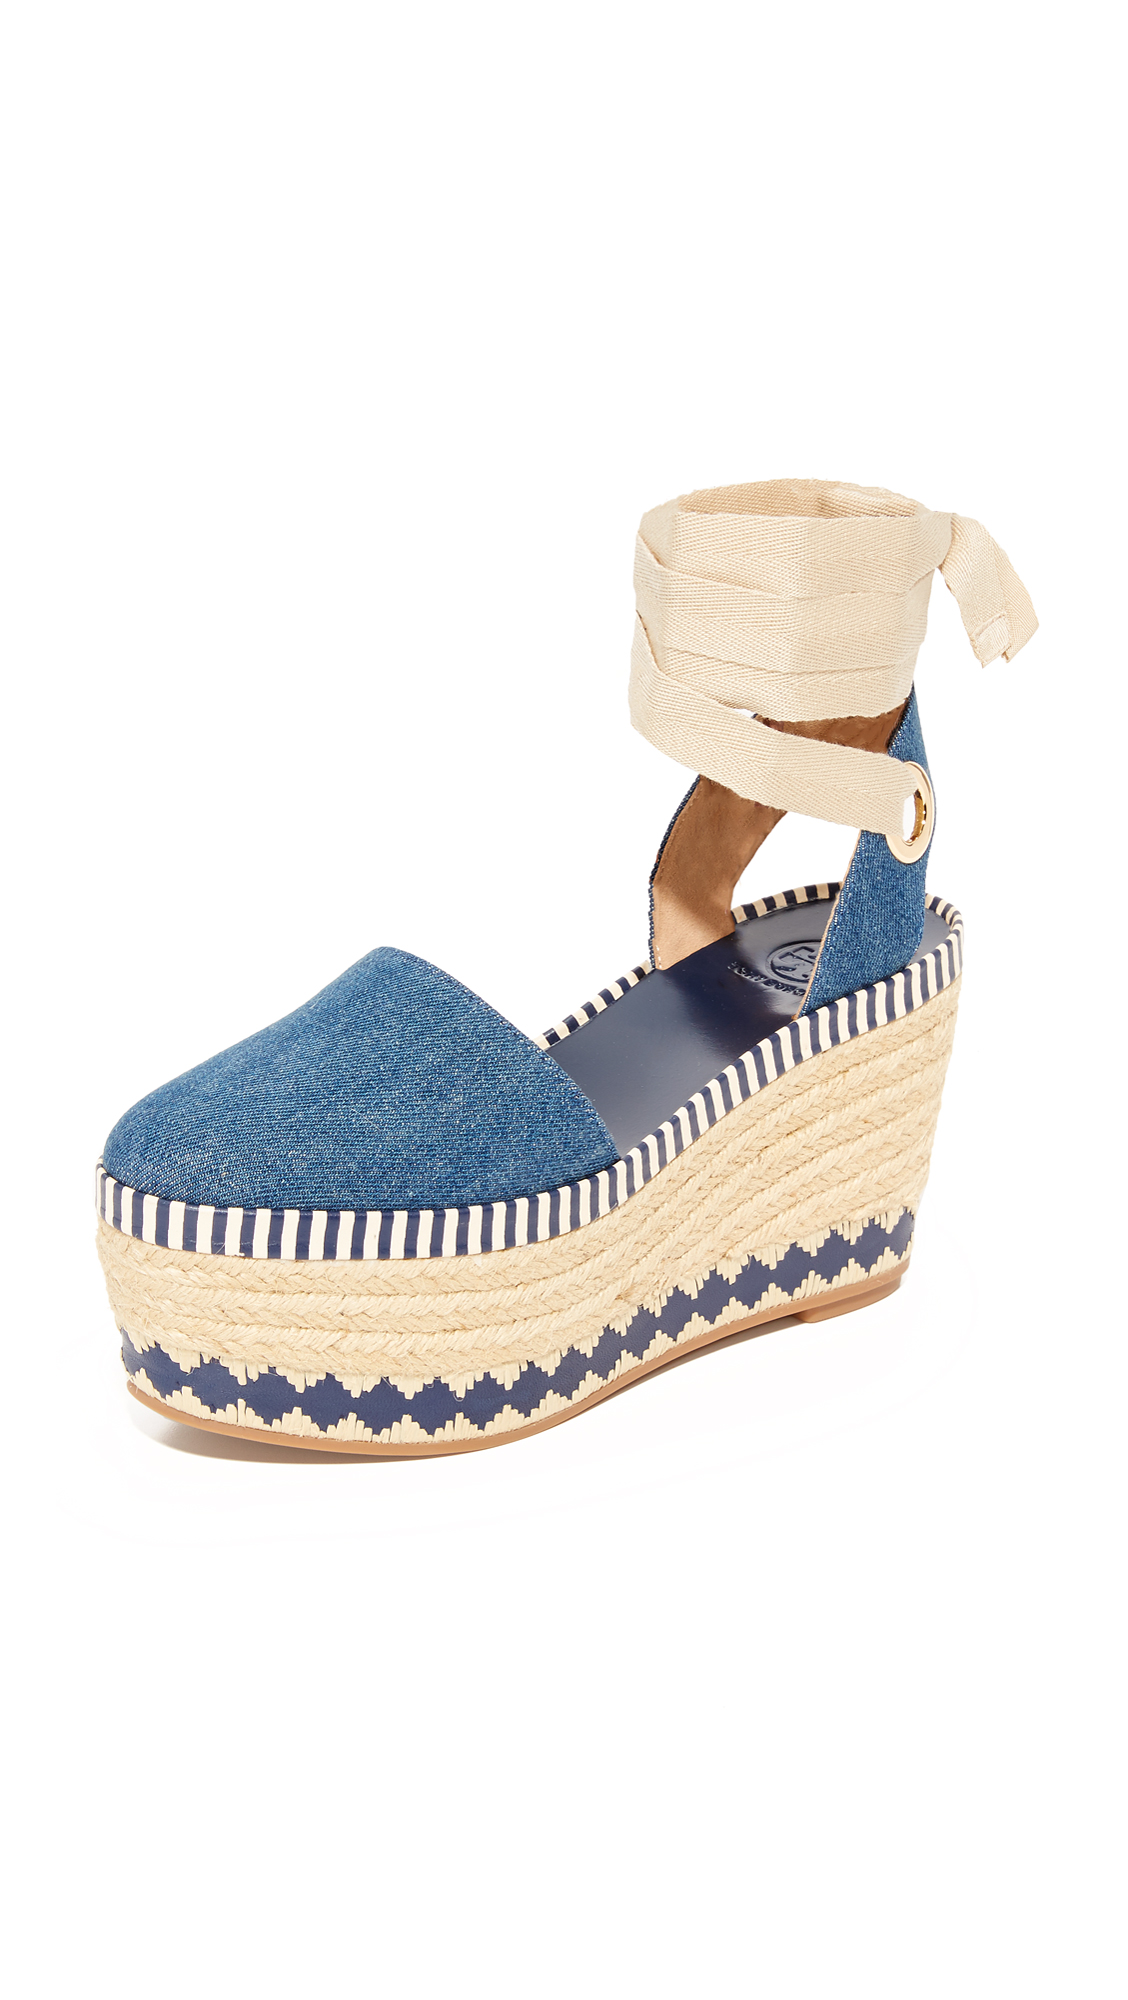 bd9eb4475efb72 Tory Burch Dandy Espadrille Wedges